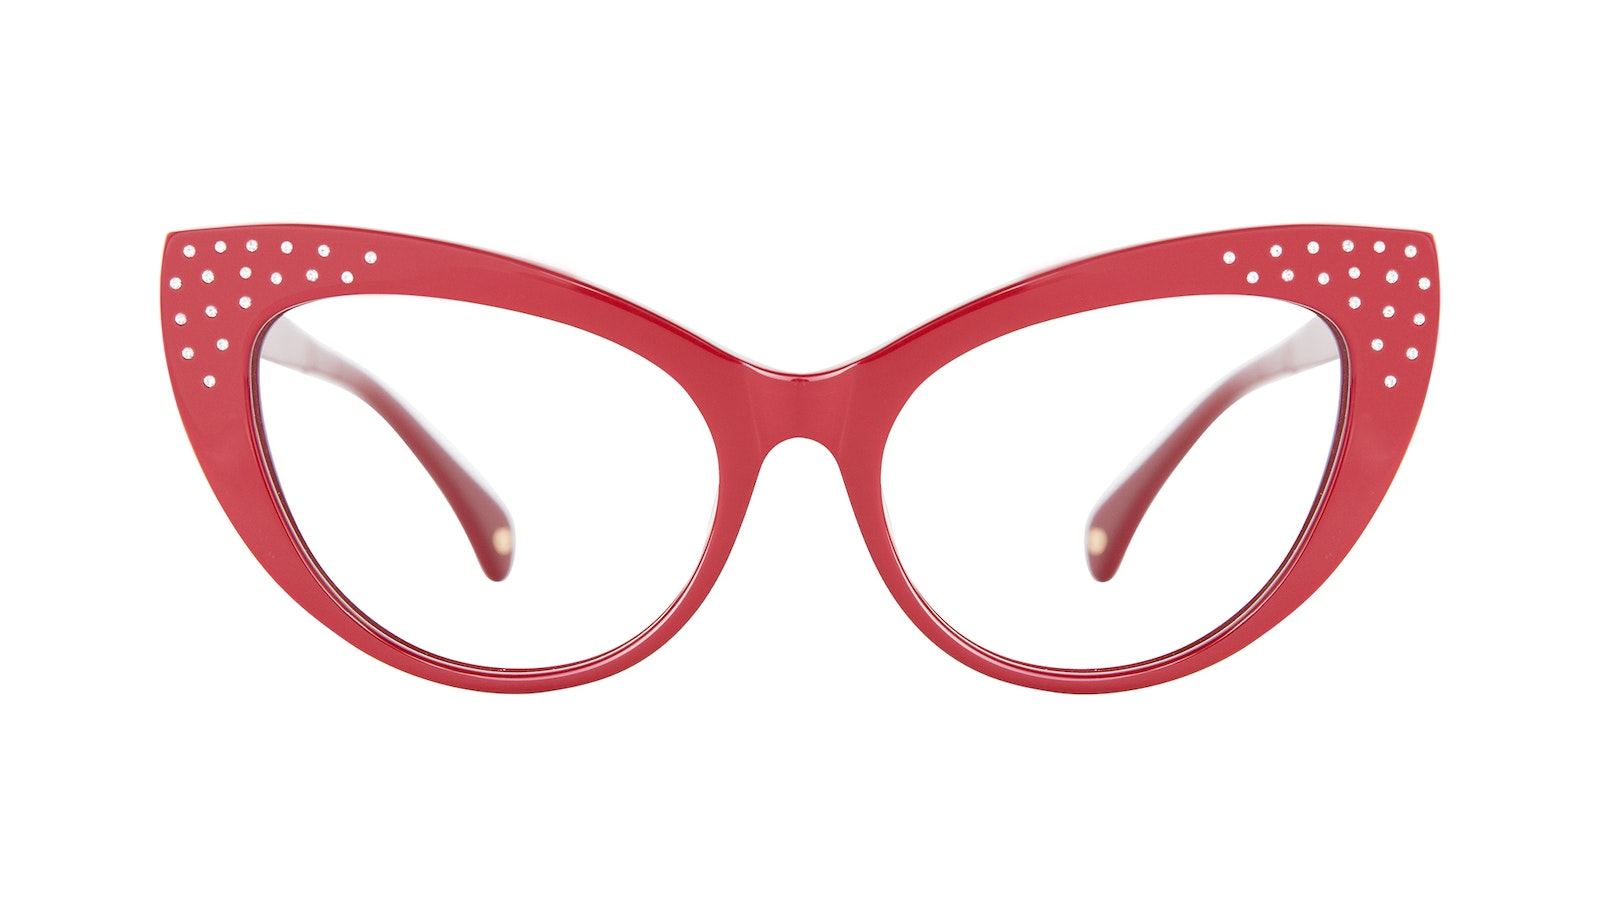 Affordable Fashion Glasses Cat Eye Daring Cateye Eyeglasses Women Keiko Amanda Red